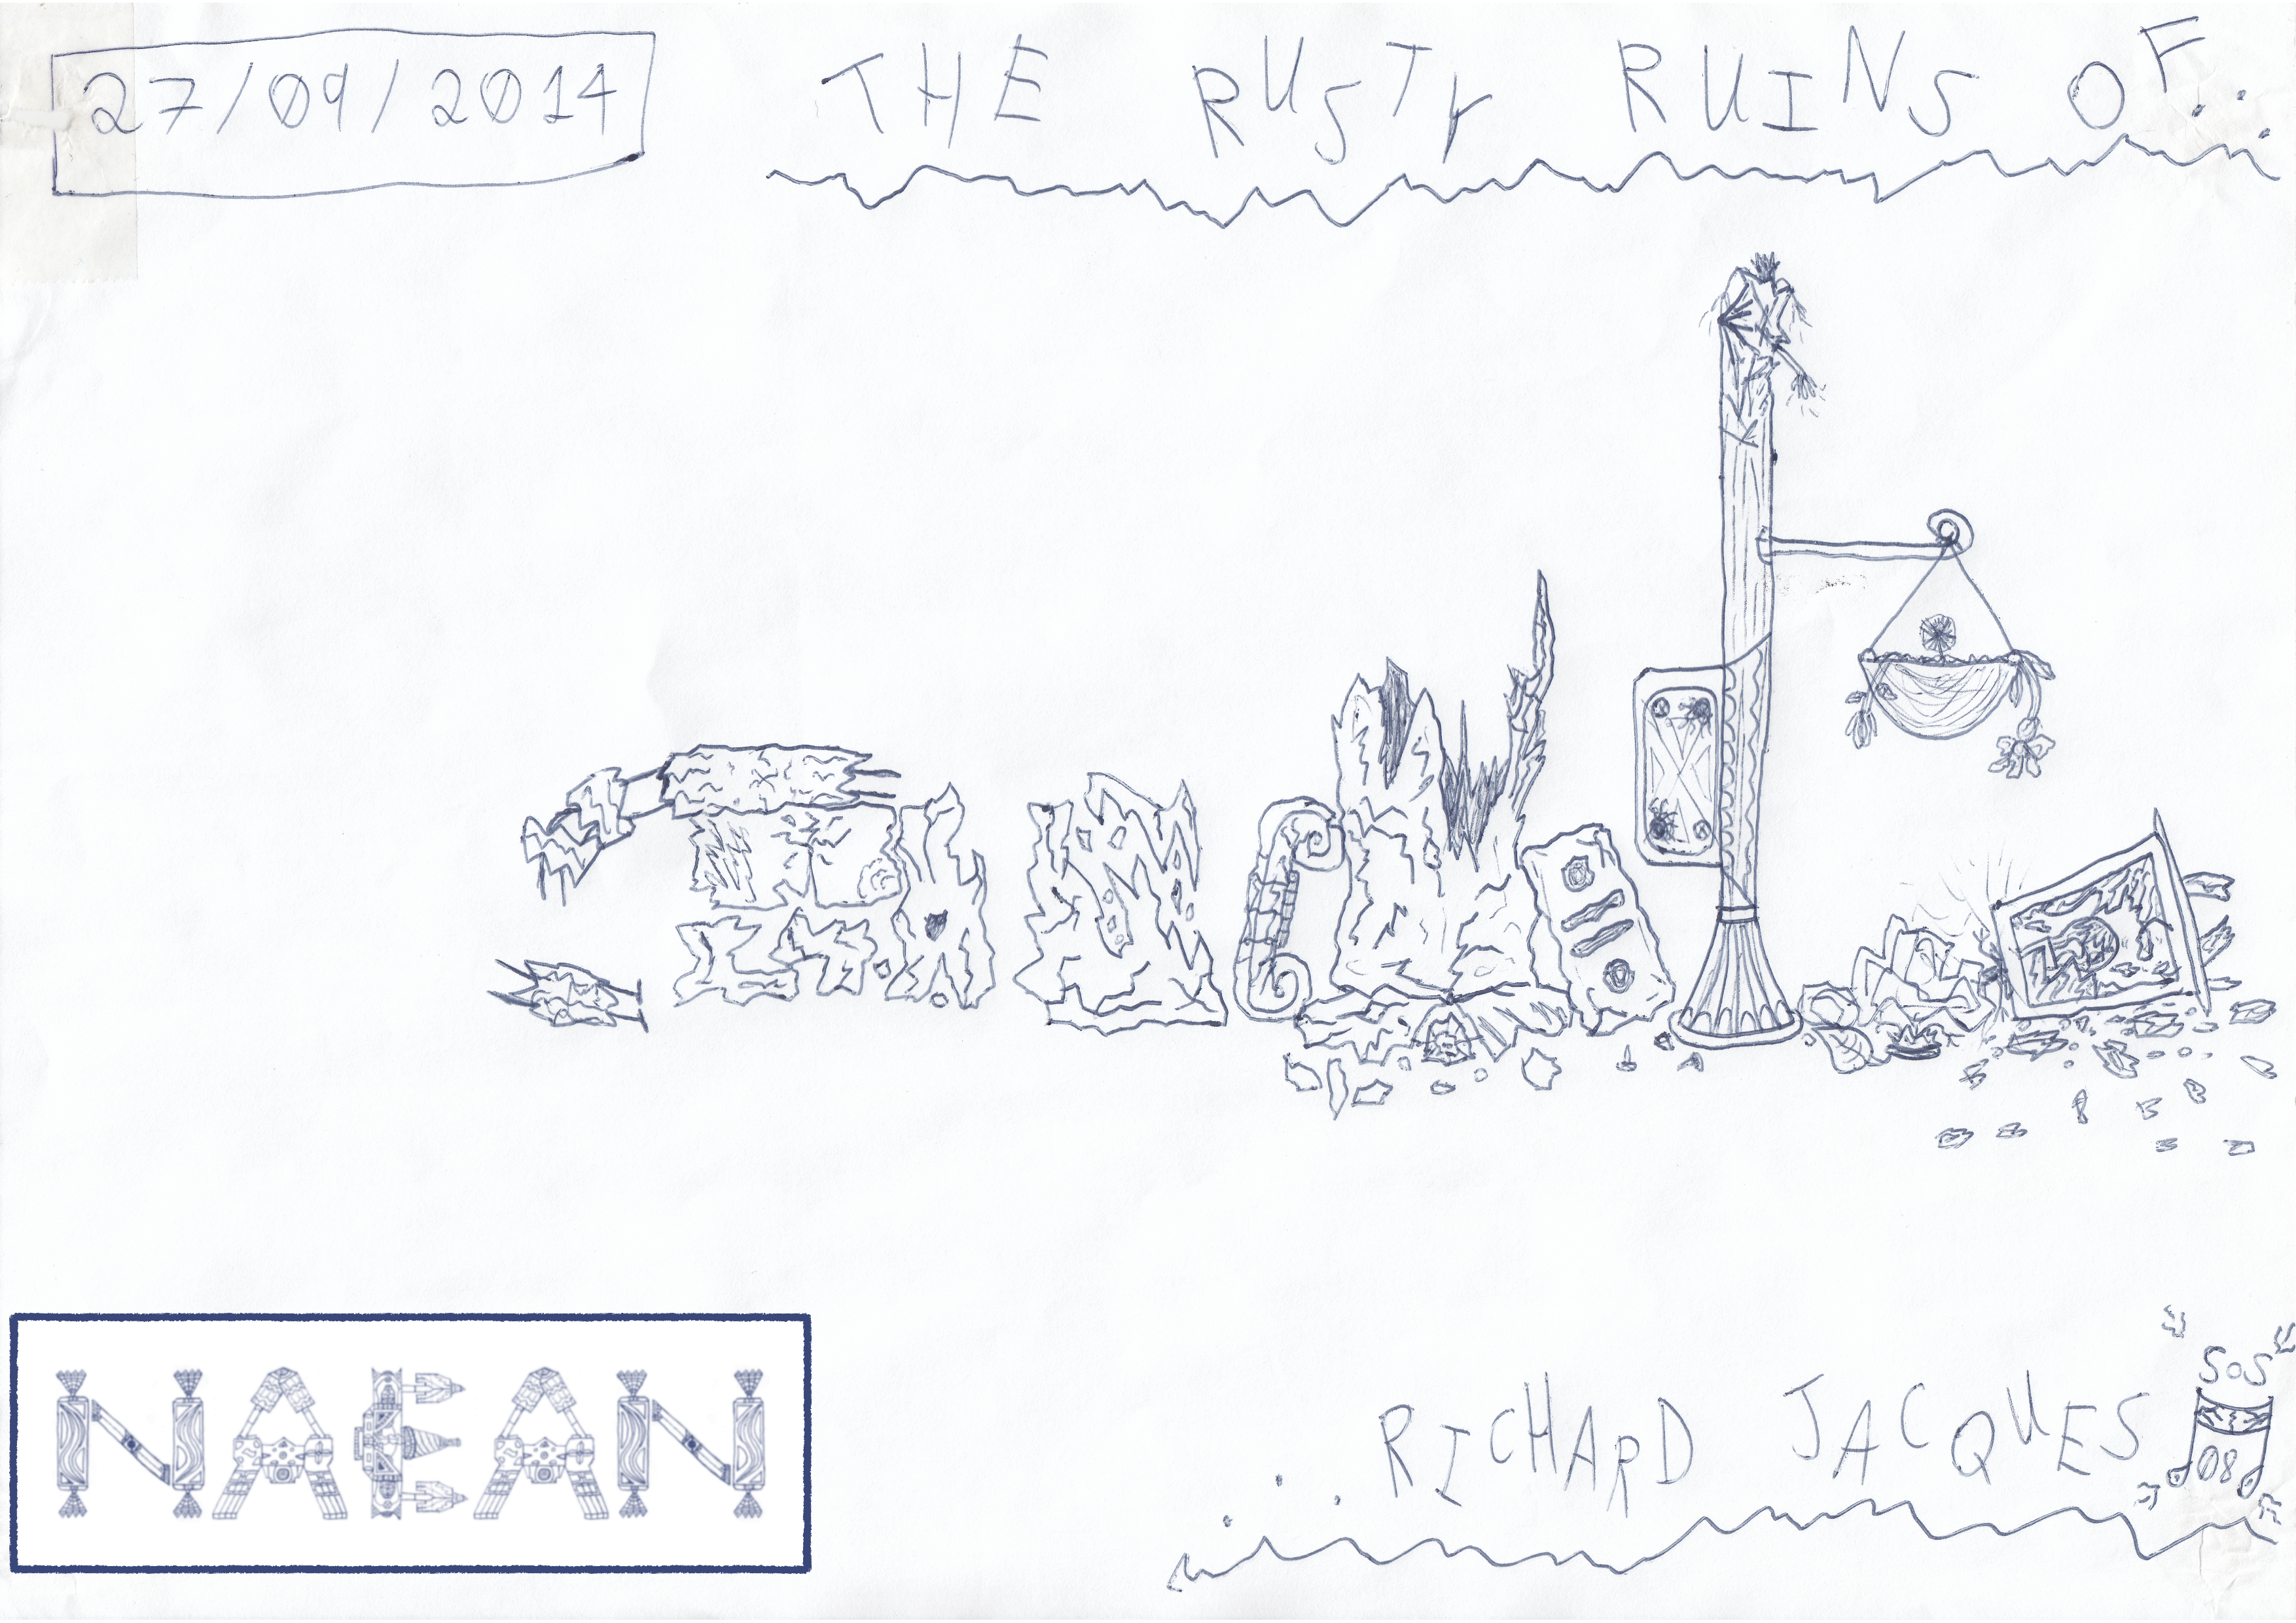 The Rusty Ruins Of Richard Jacques (27/09/2014)